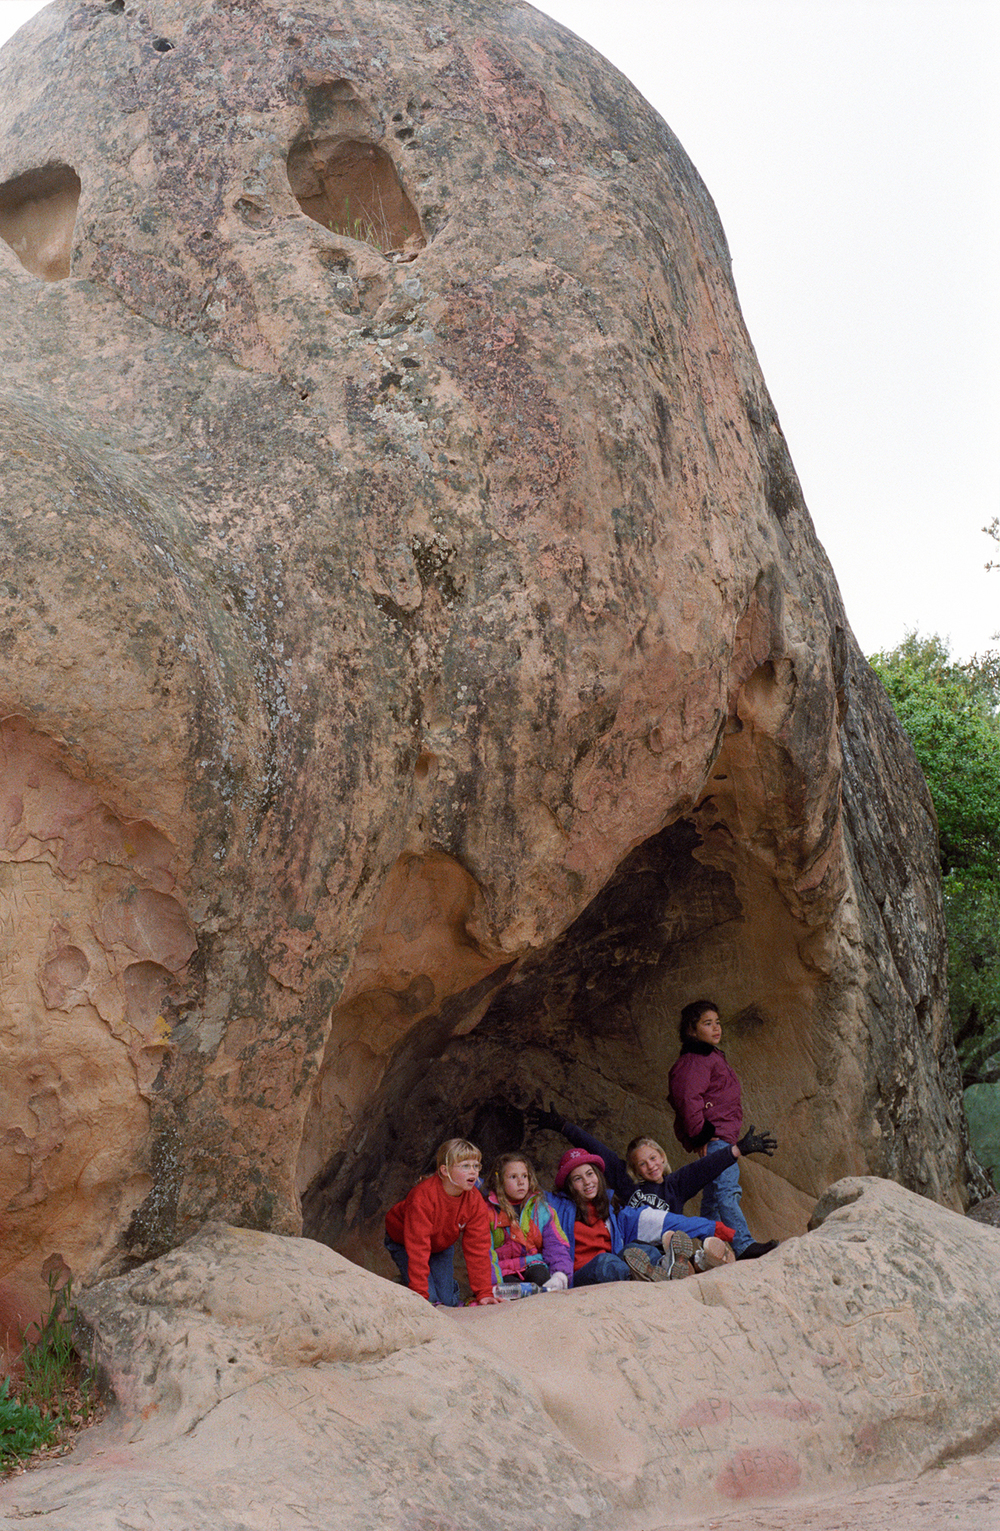 Students explore wind cave at Rock City, Diablo Nature Adventures